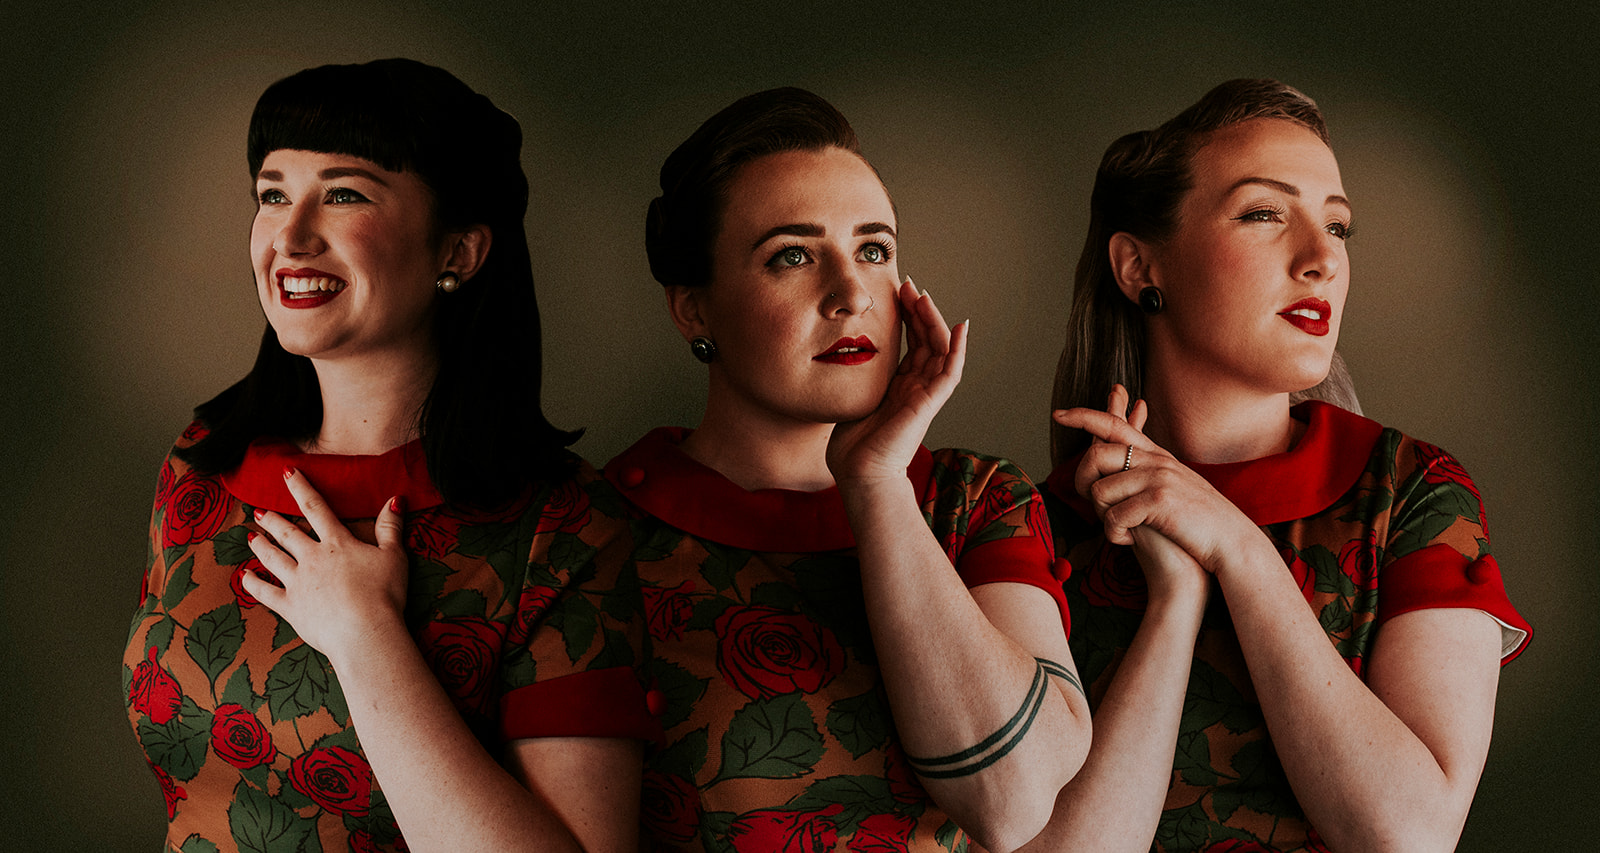 THE VICTORY DOLLS - Lauren Armstrong / Moira Jean / Katelin Little3 part close-vocal harmonies